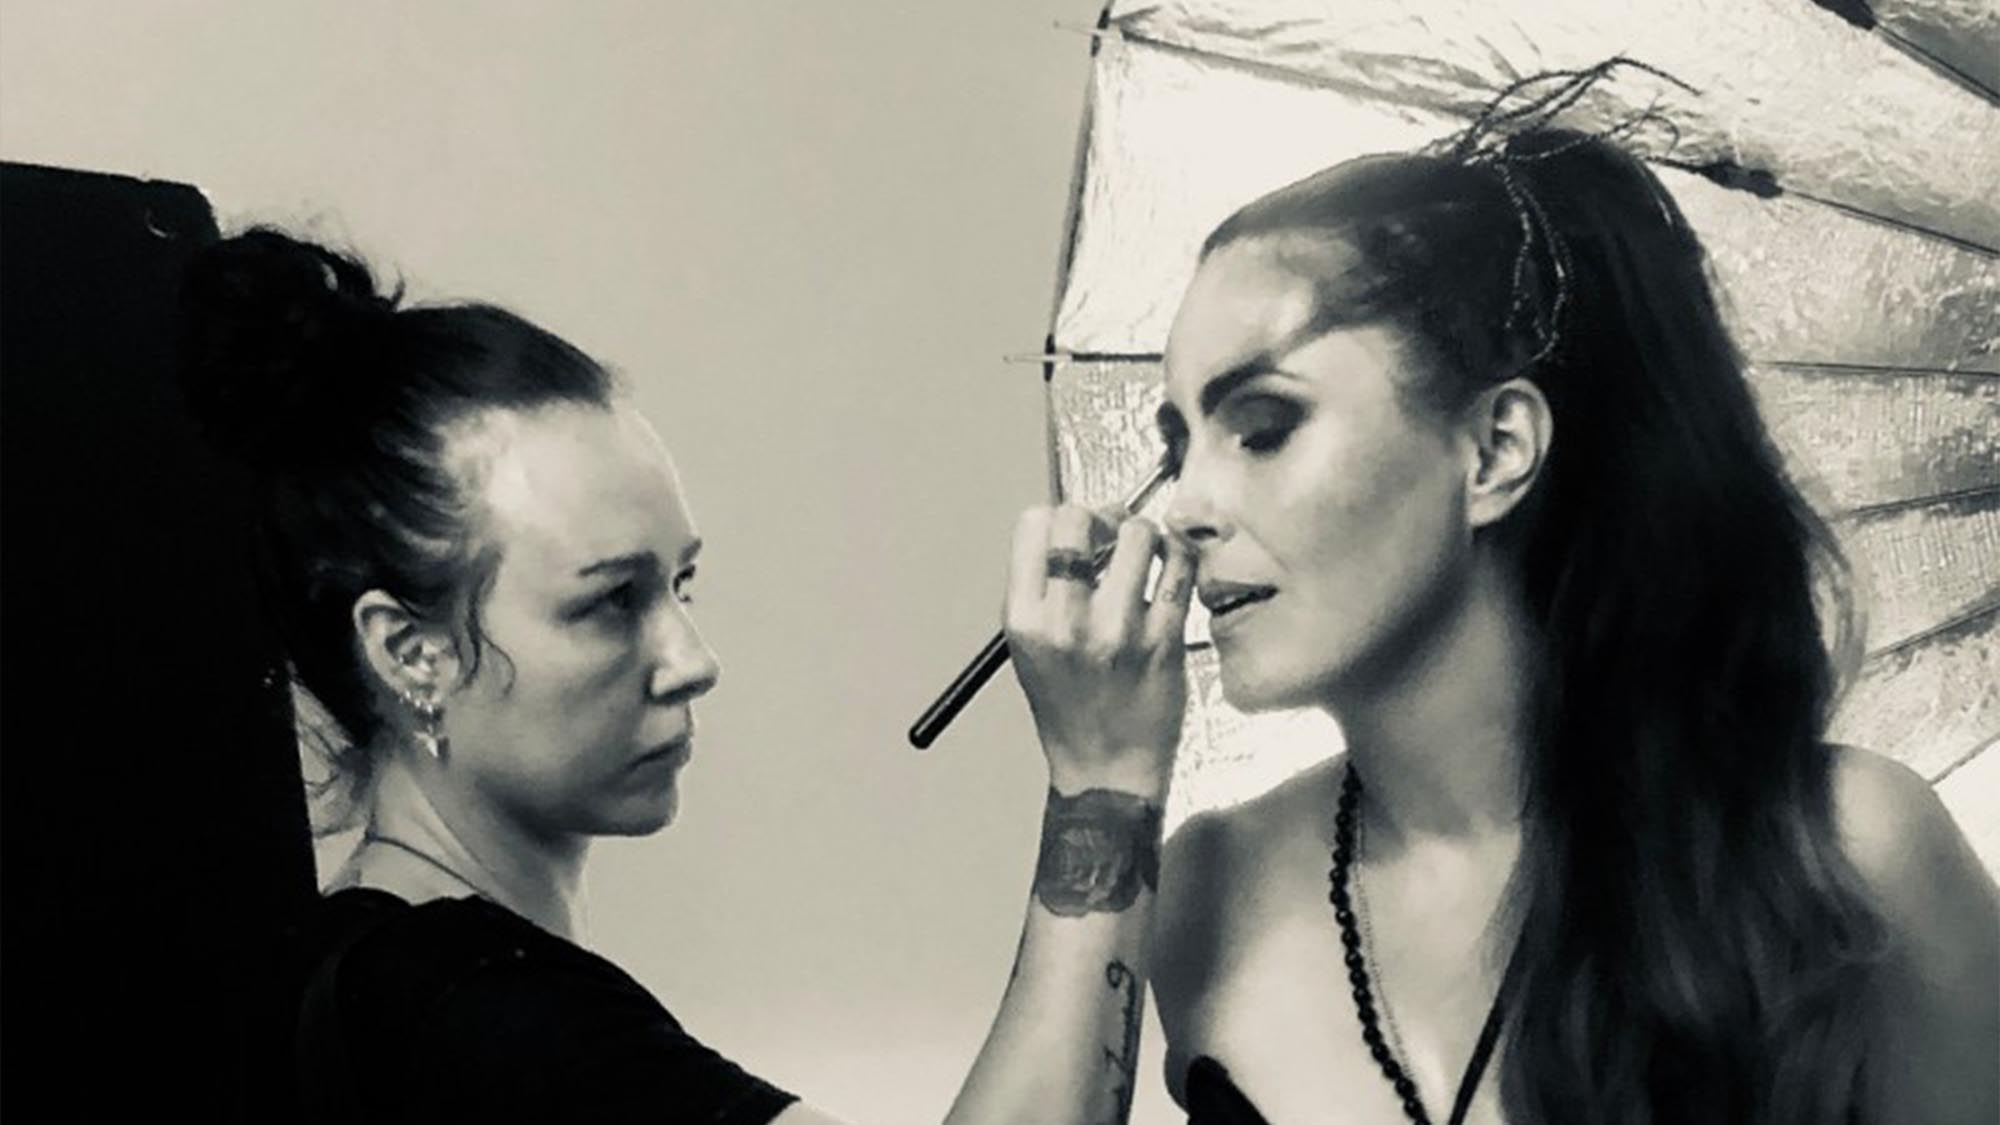 Sharon den Adel on set for their seventh studio album 2018 WT7